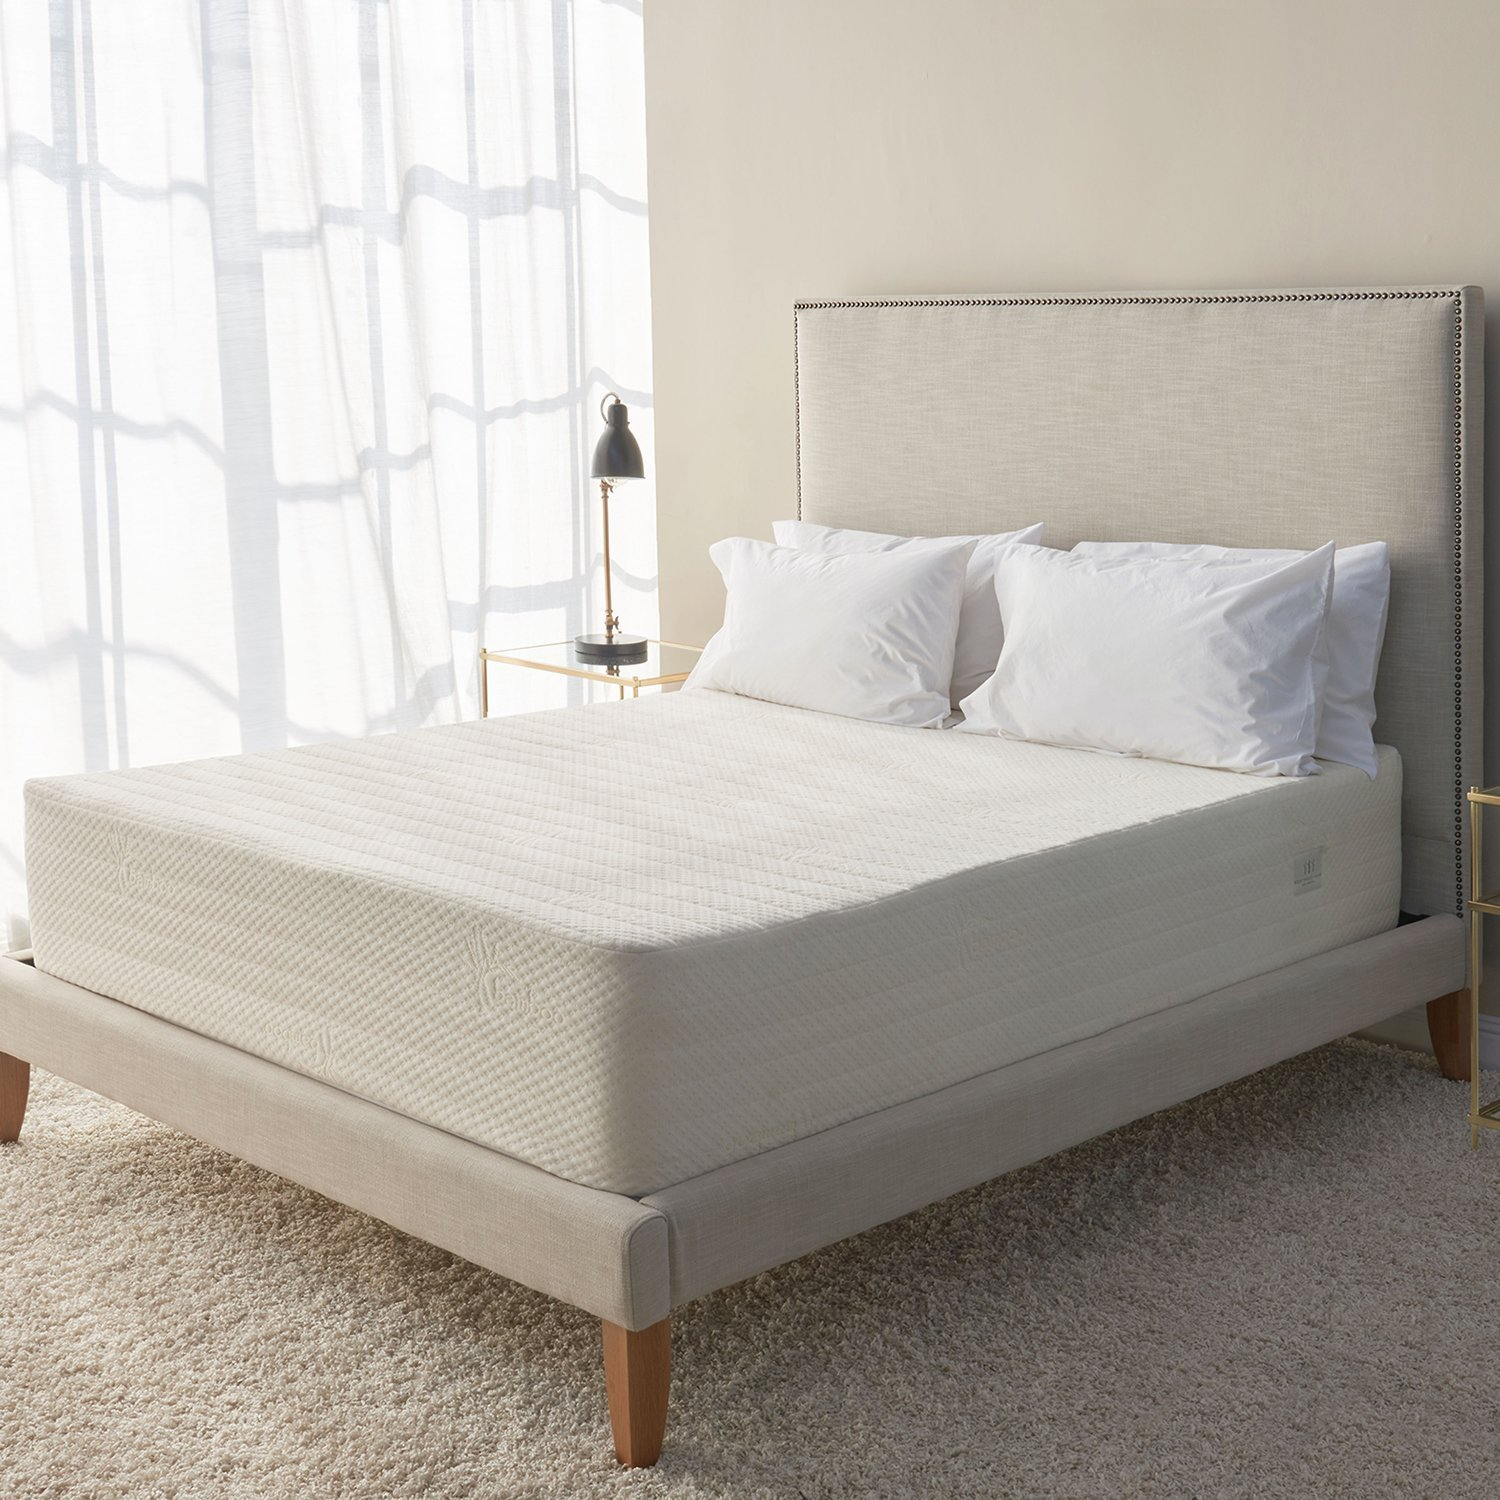 brentwood-home-bamboo-gel-memory-foam-mattress